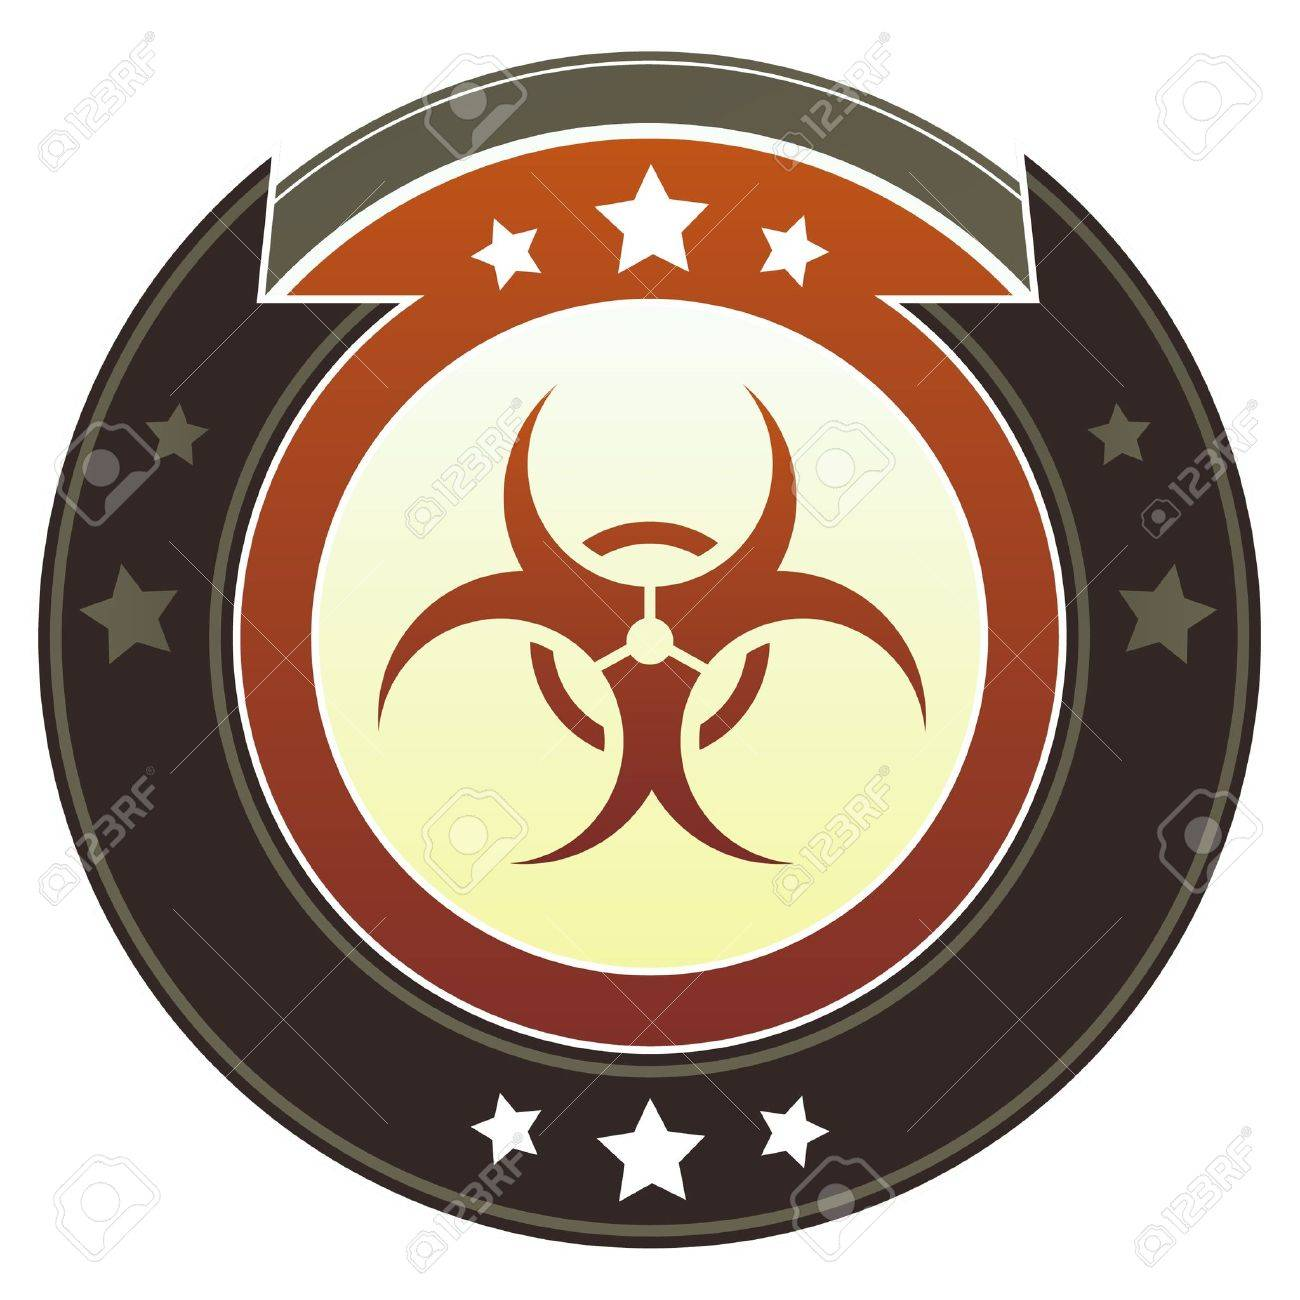 Biohazard warning icon on round red and brown imperial vector button with star accents suitable for use on website, in print and promotional materials, and for advertising Stock Vector - 14707402